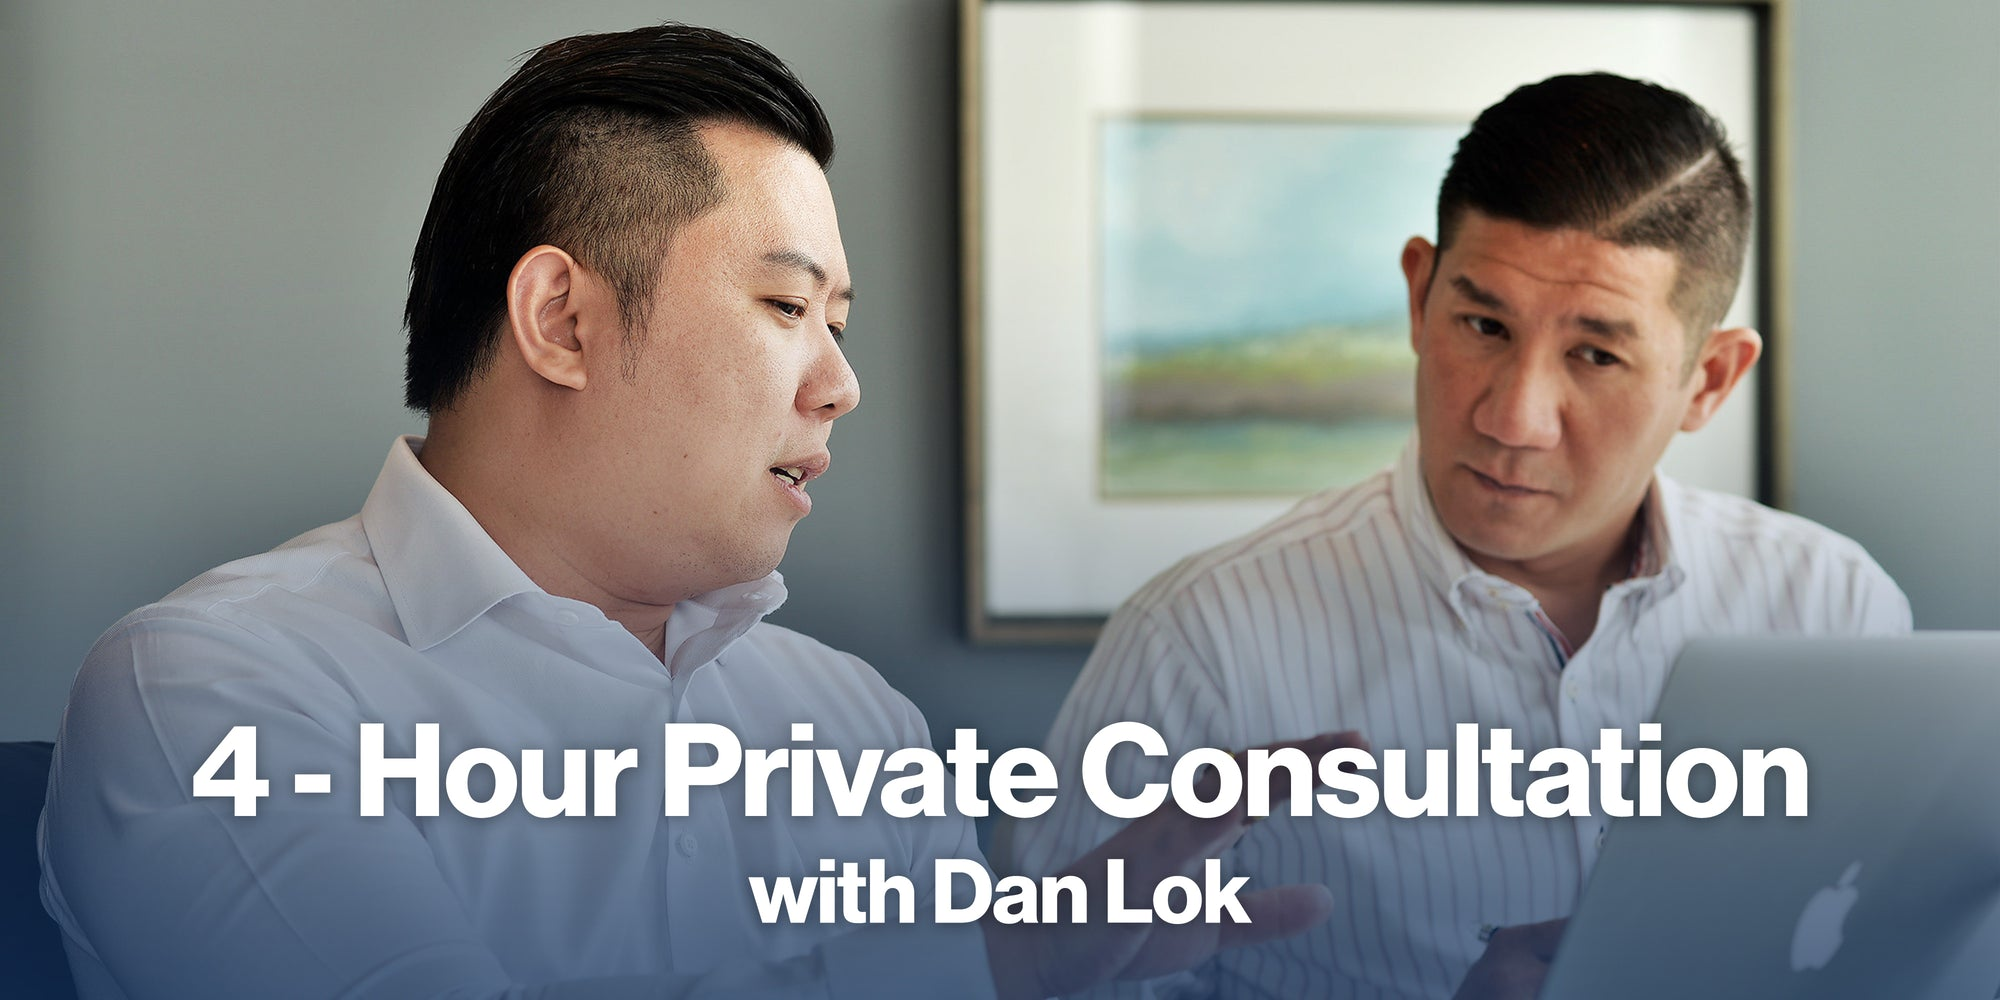 4-Hour Private Consultation With Dan Lok